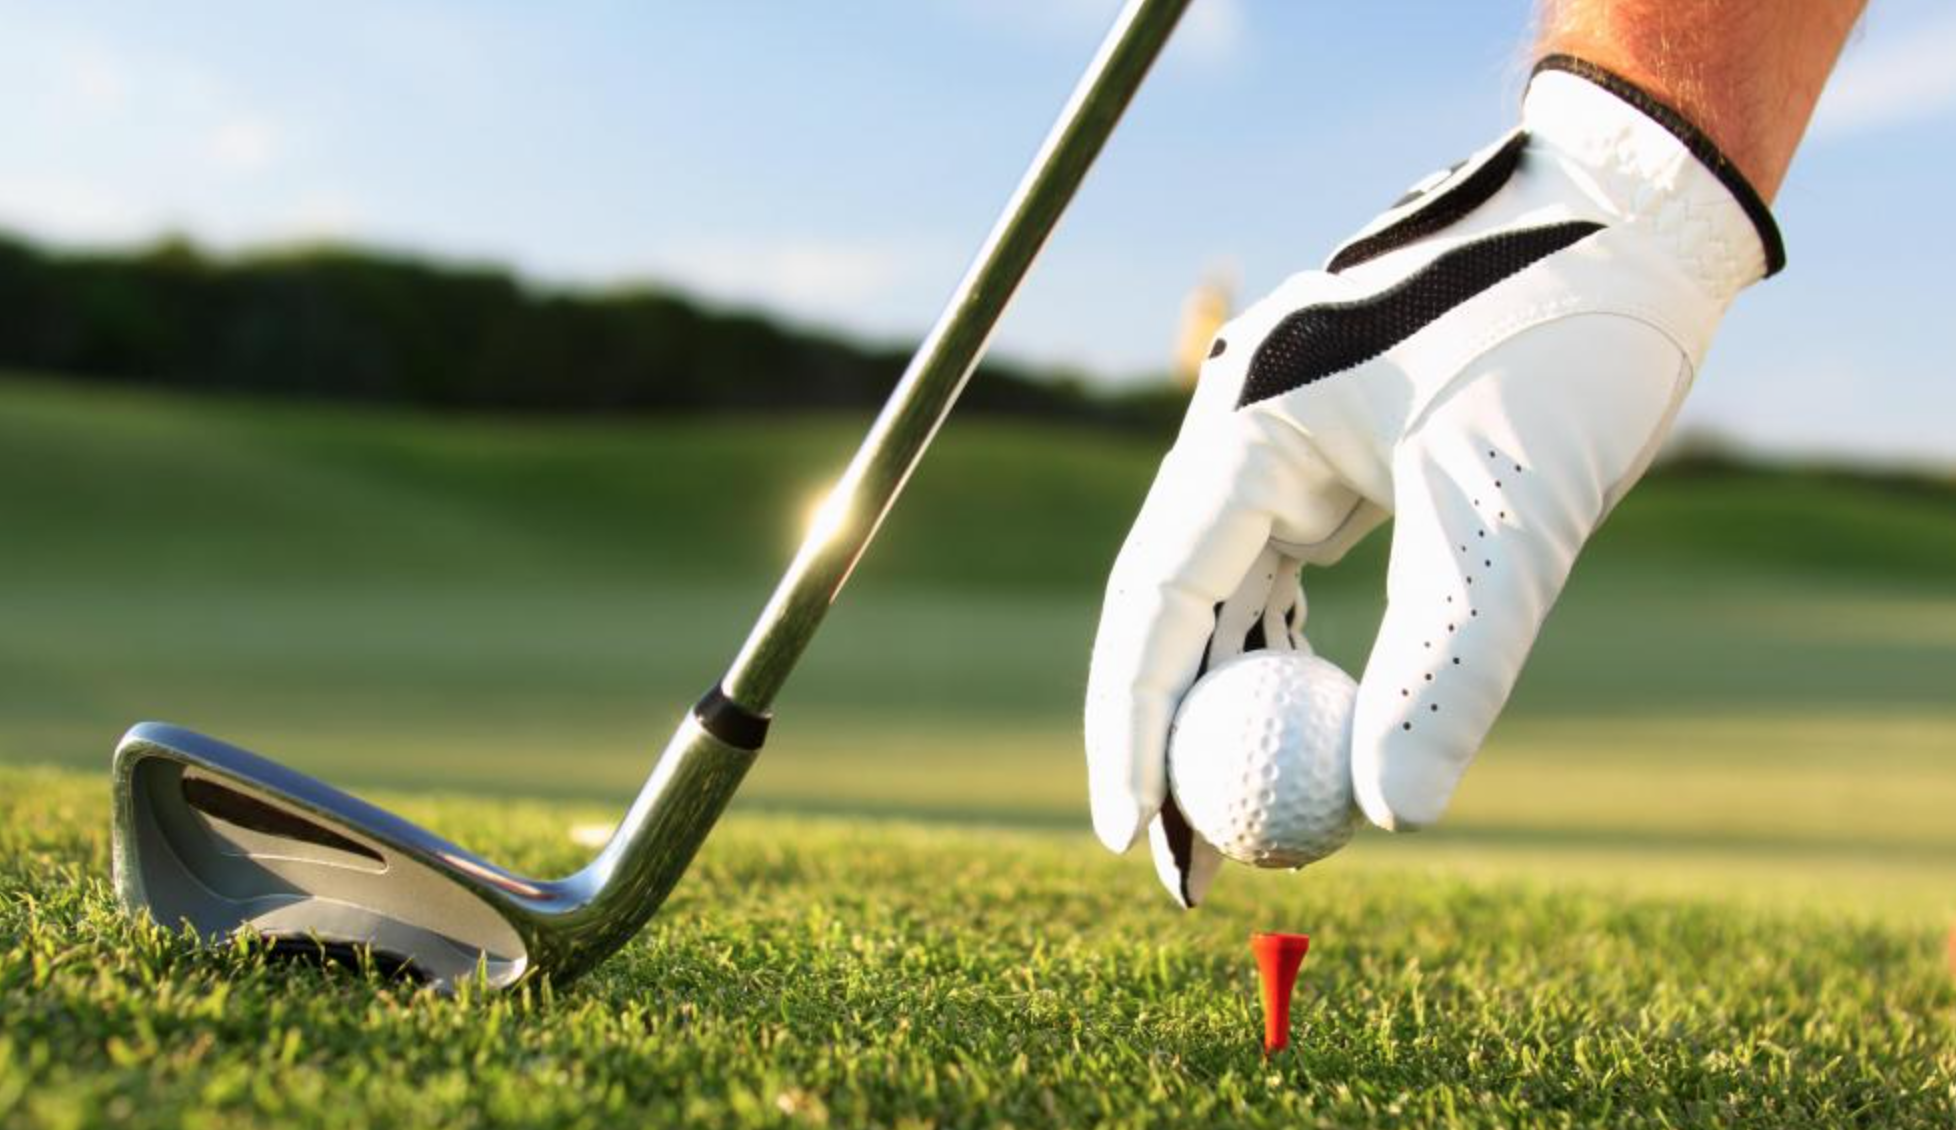 TIPS PARA ENTRENAMIENTO DE GOLF - Medicals